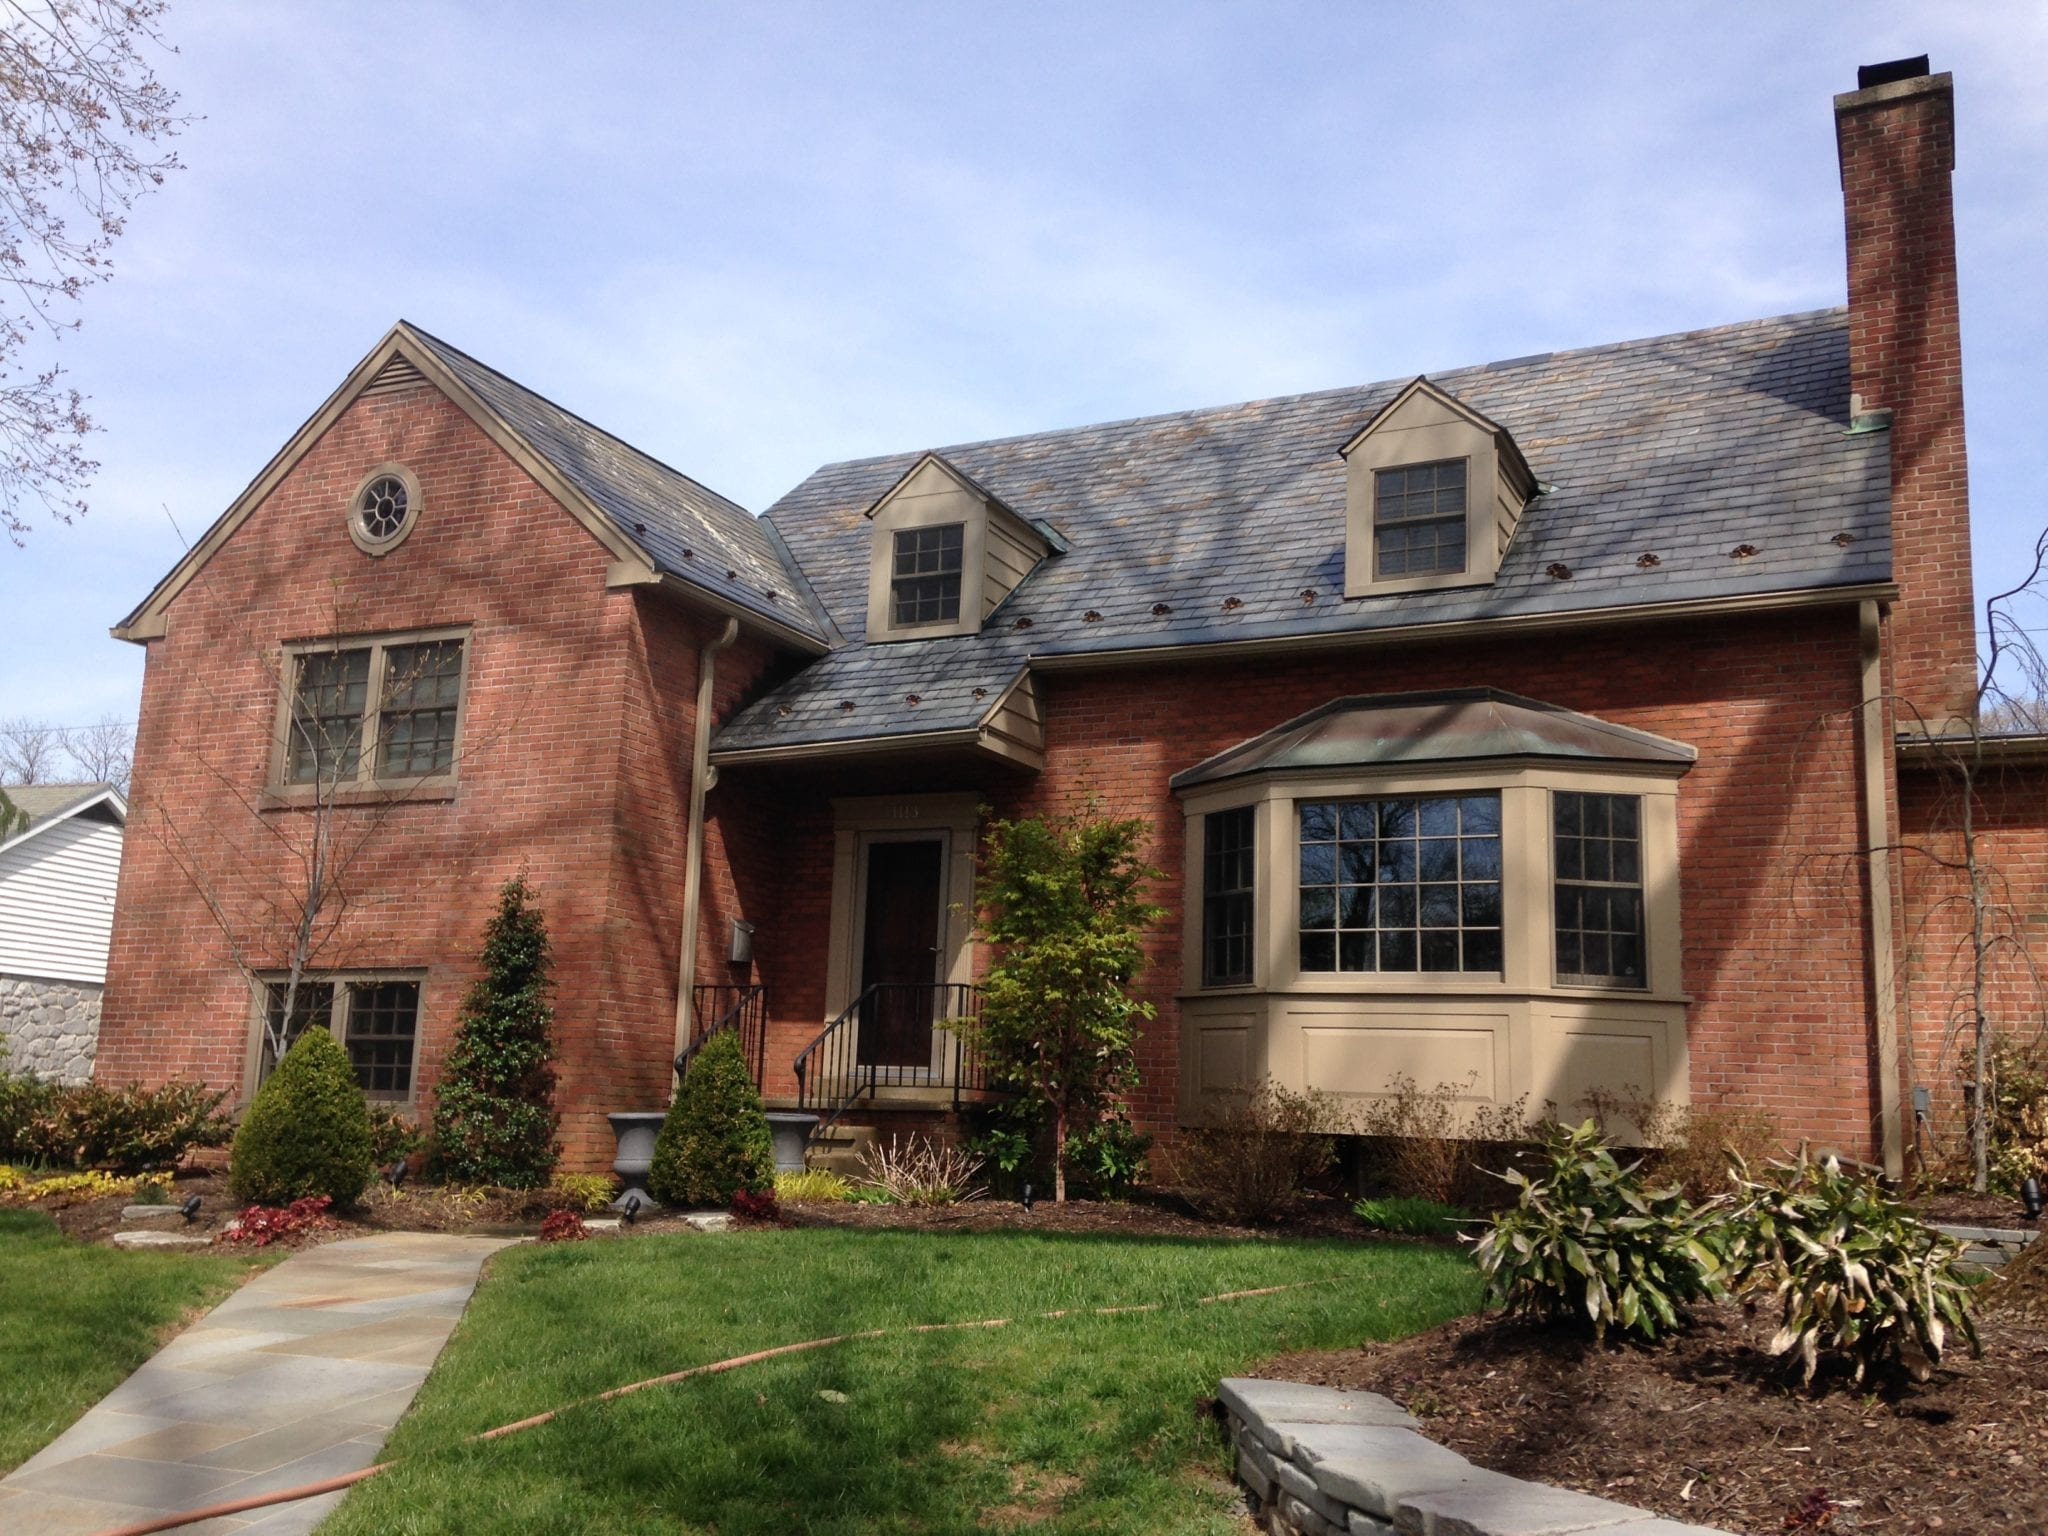 Roof Cleaning Harrisburg Pa Pressure Washing Services Pa